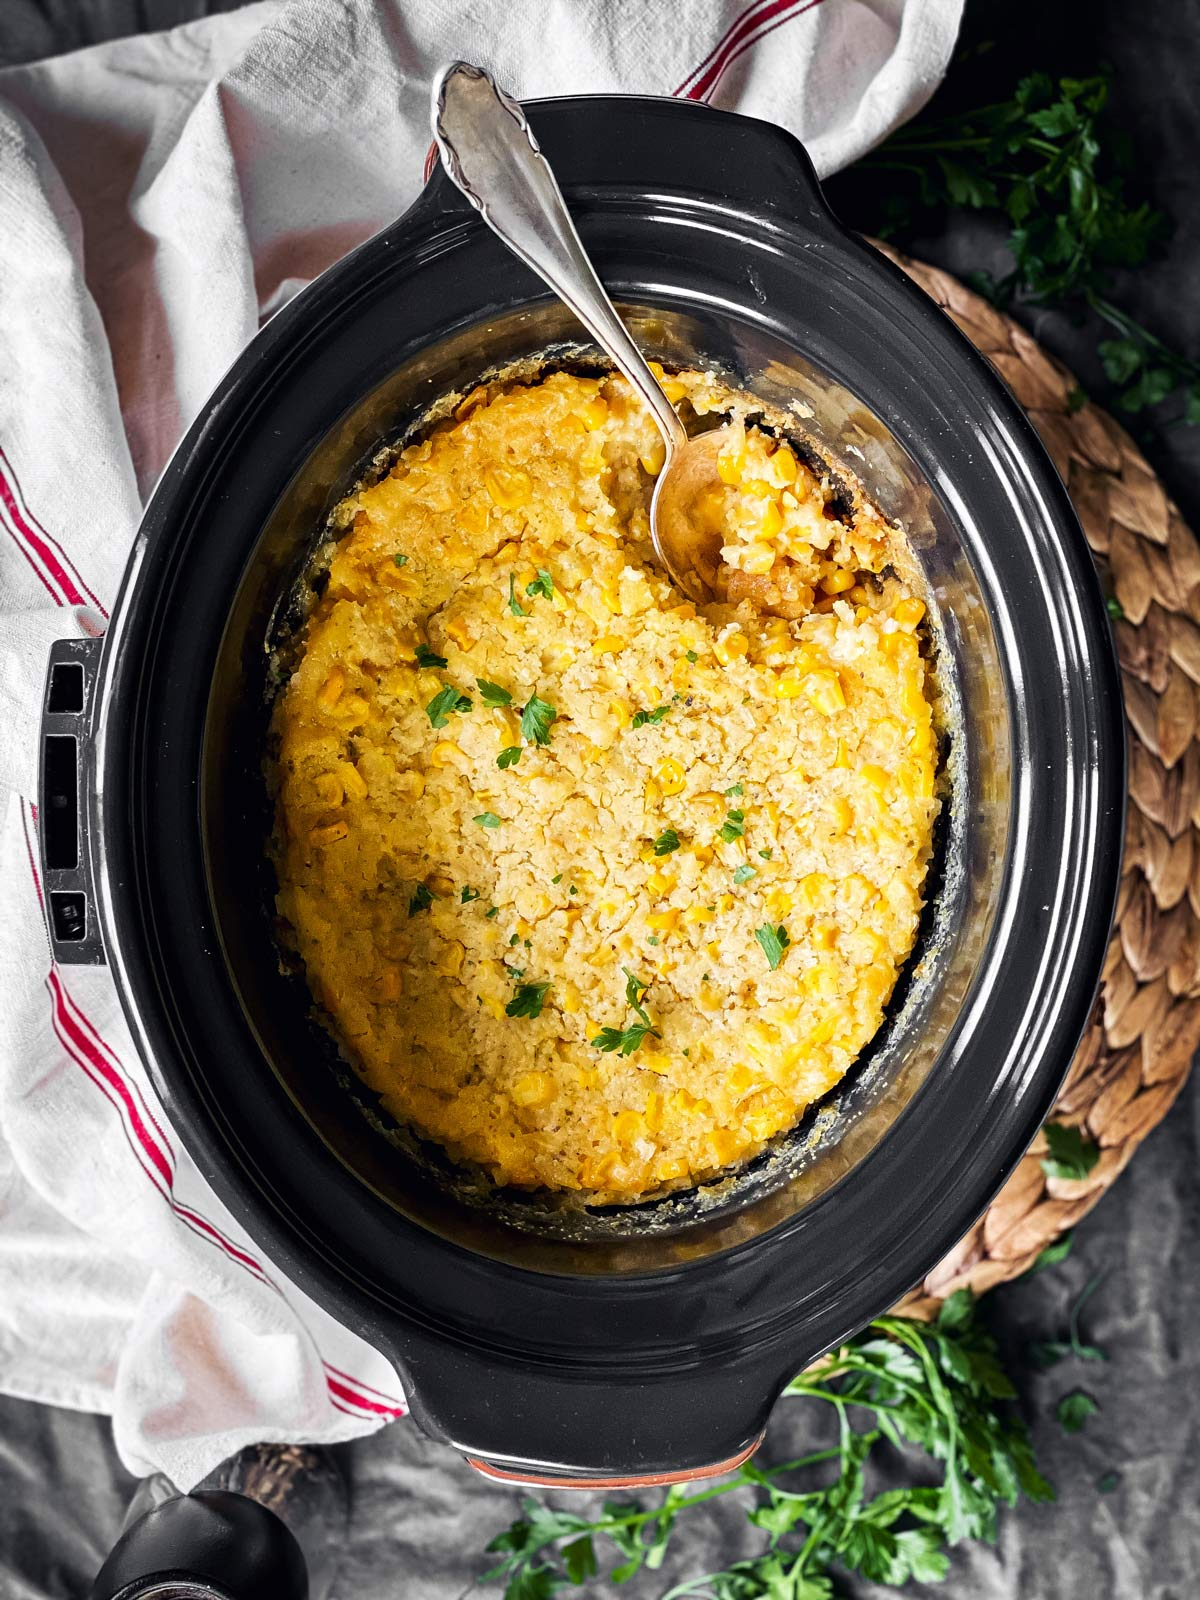 overhead view of slow cooker with corn casserole